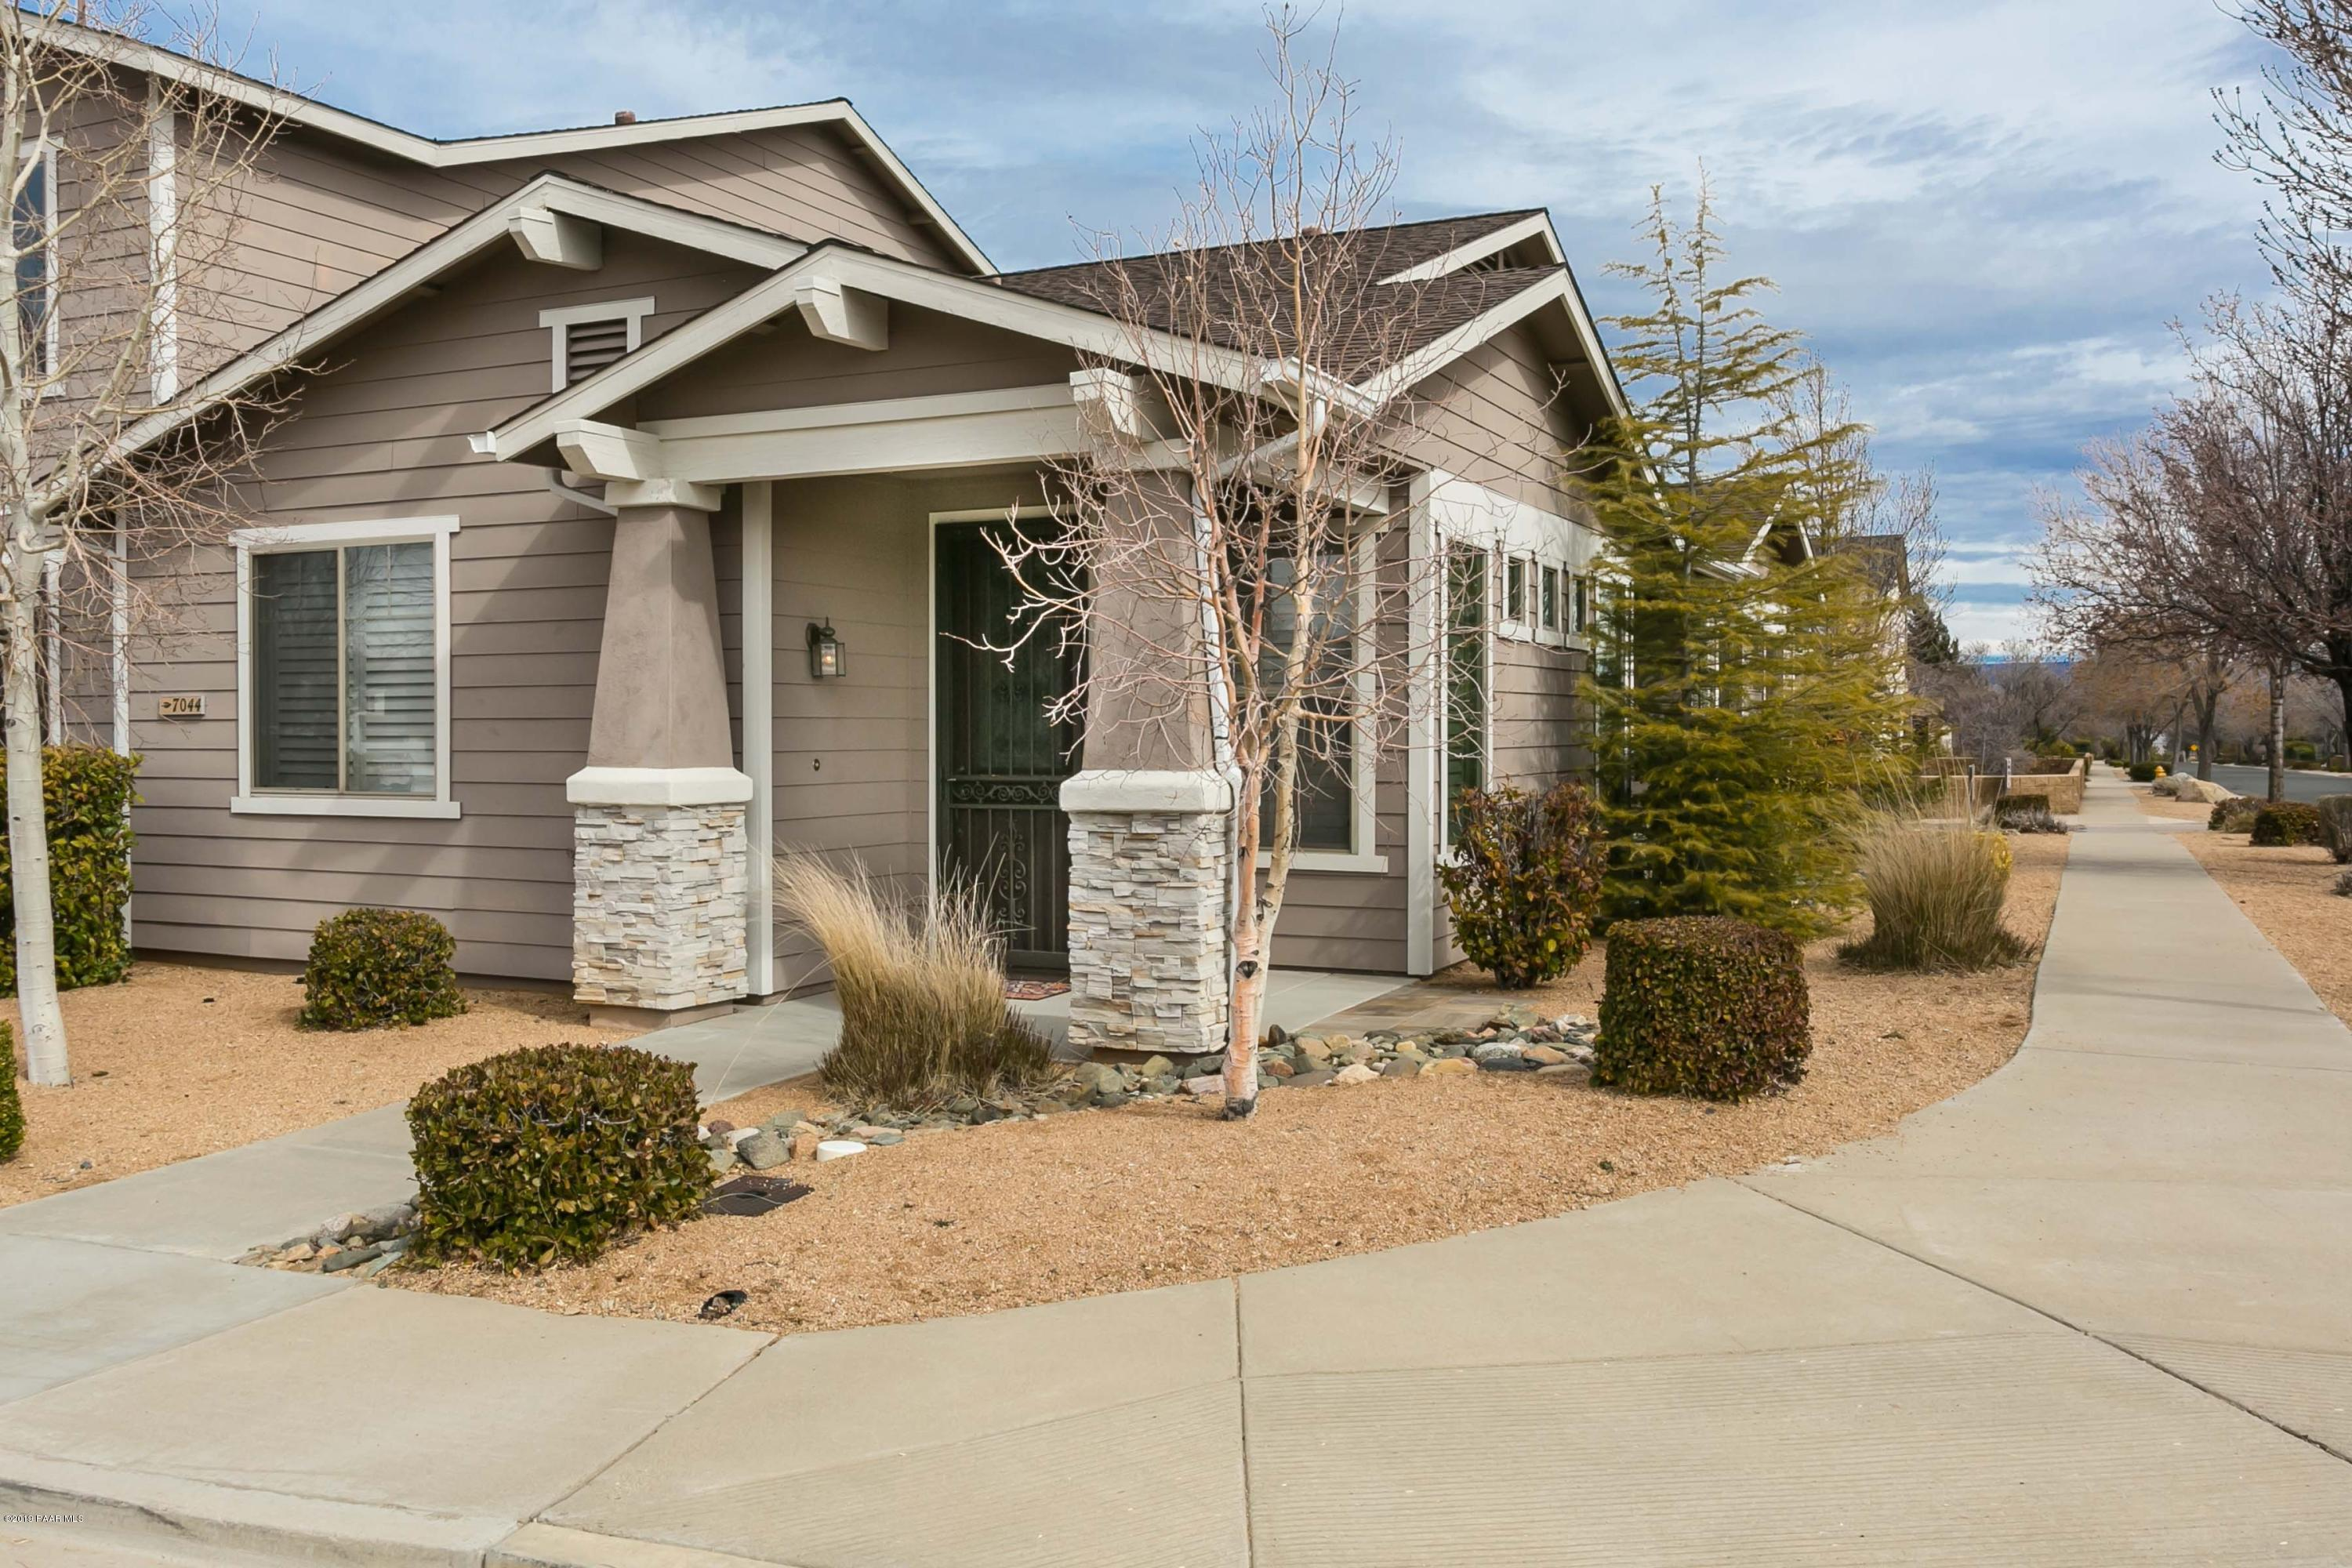 7044 E Lantern Lane, one of homes for sale in Prescott Valley